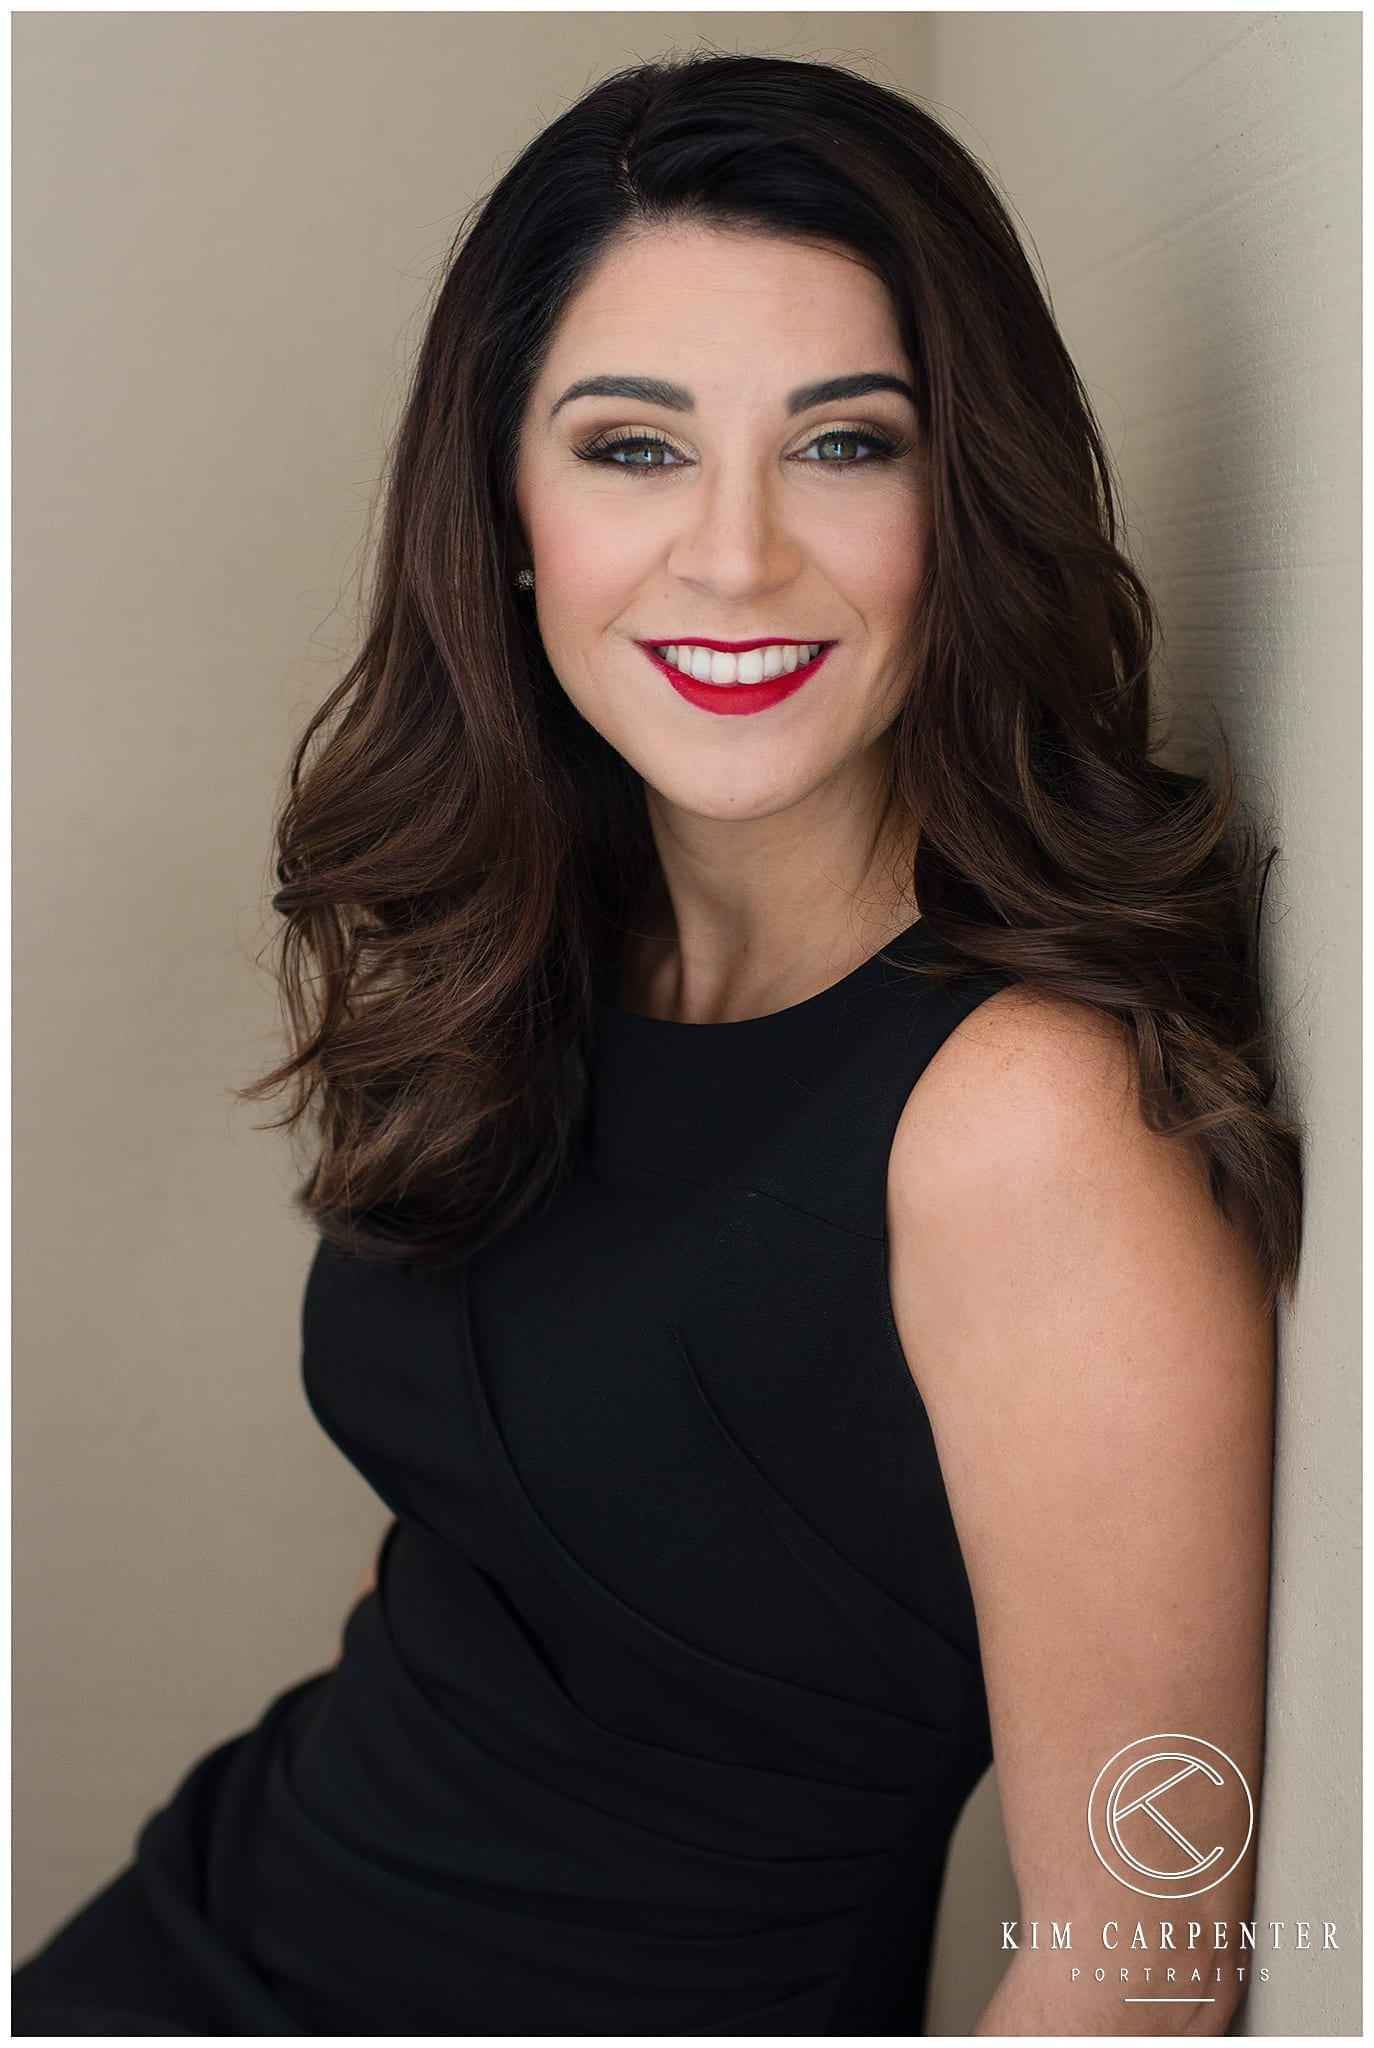 Girl leaning against a tan wall wearing a black dress. Lakeland Photographer, professional headshots